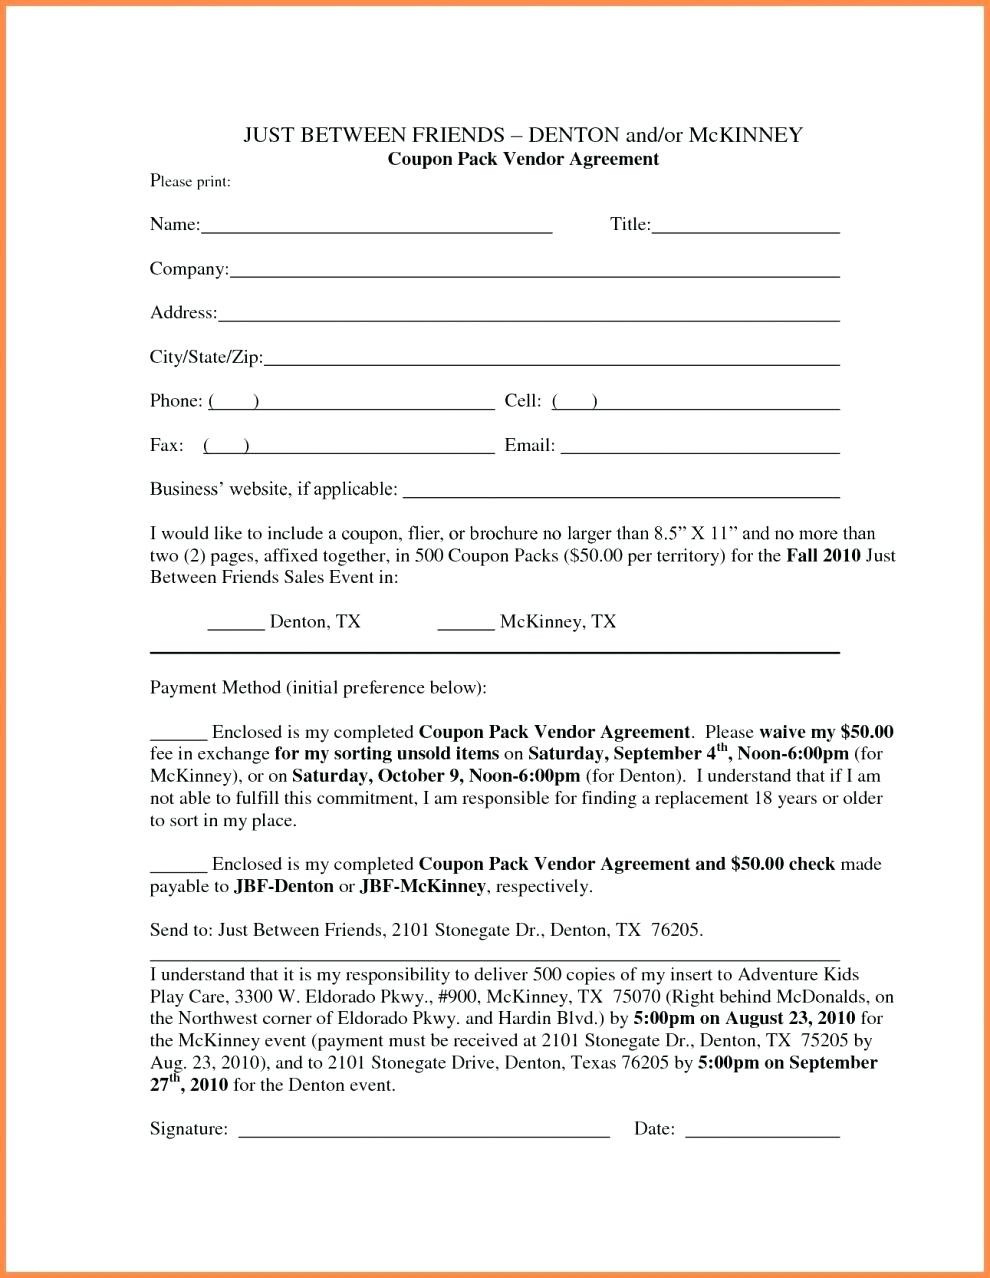 Ownership Certificate Template Choice Image Template for Ownership Certificate Template